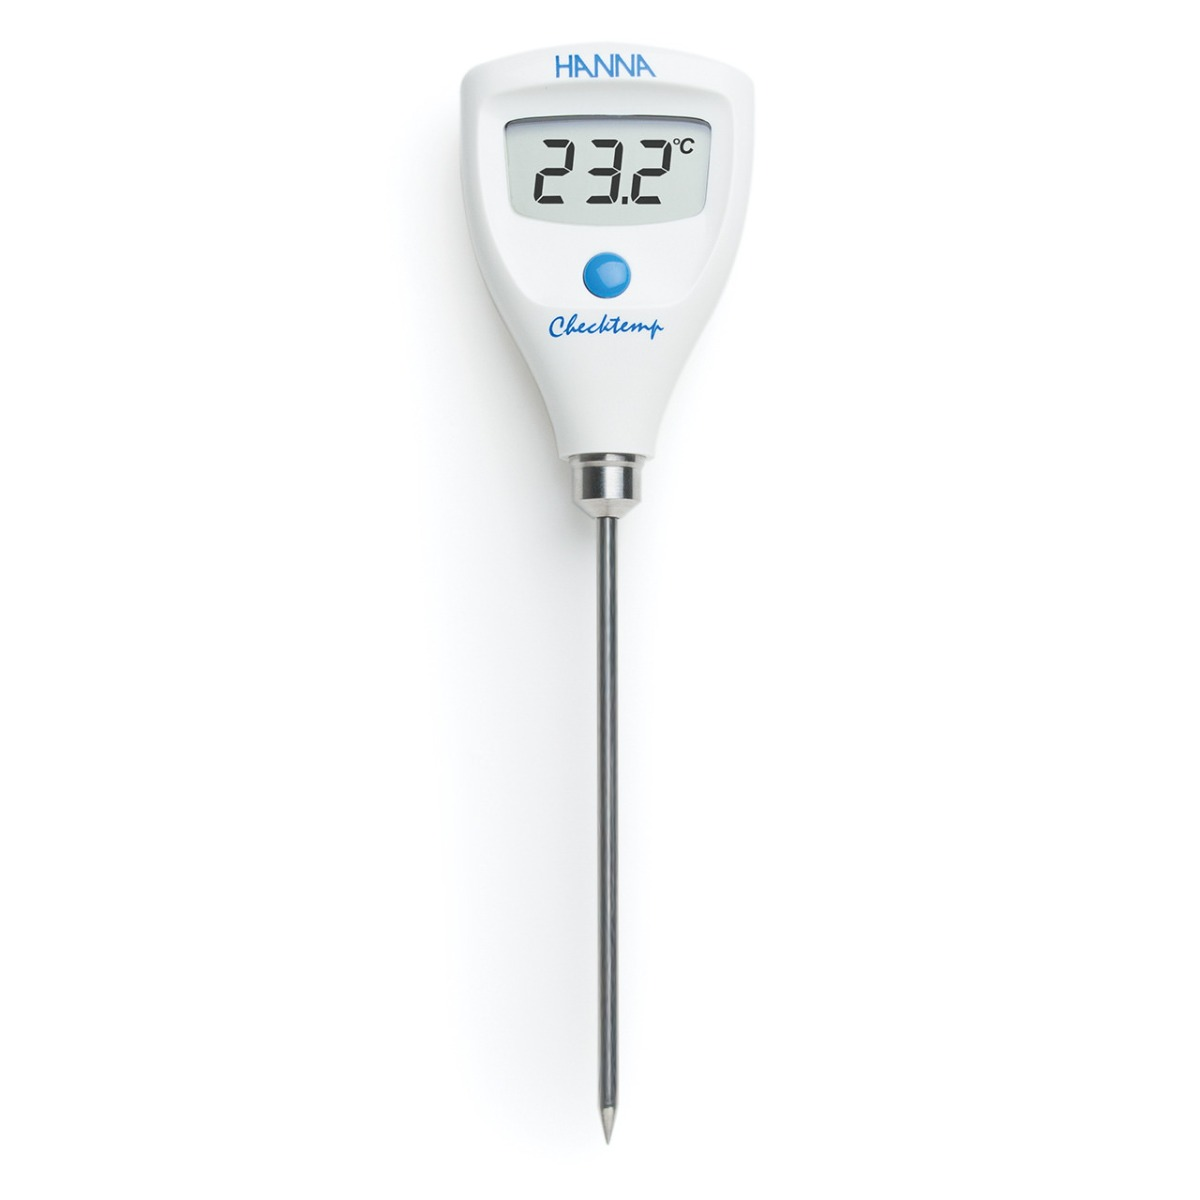 Checktemp® Digital Thermometer - HI98501